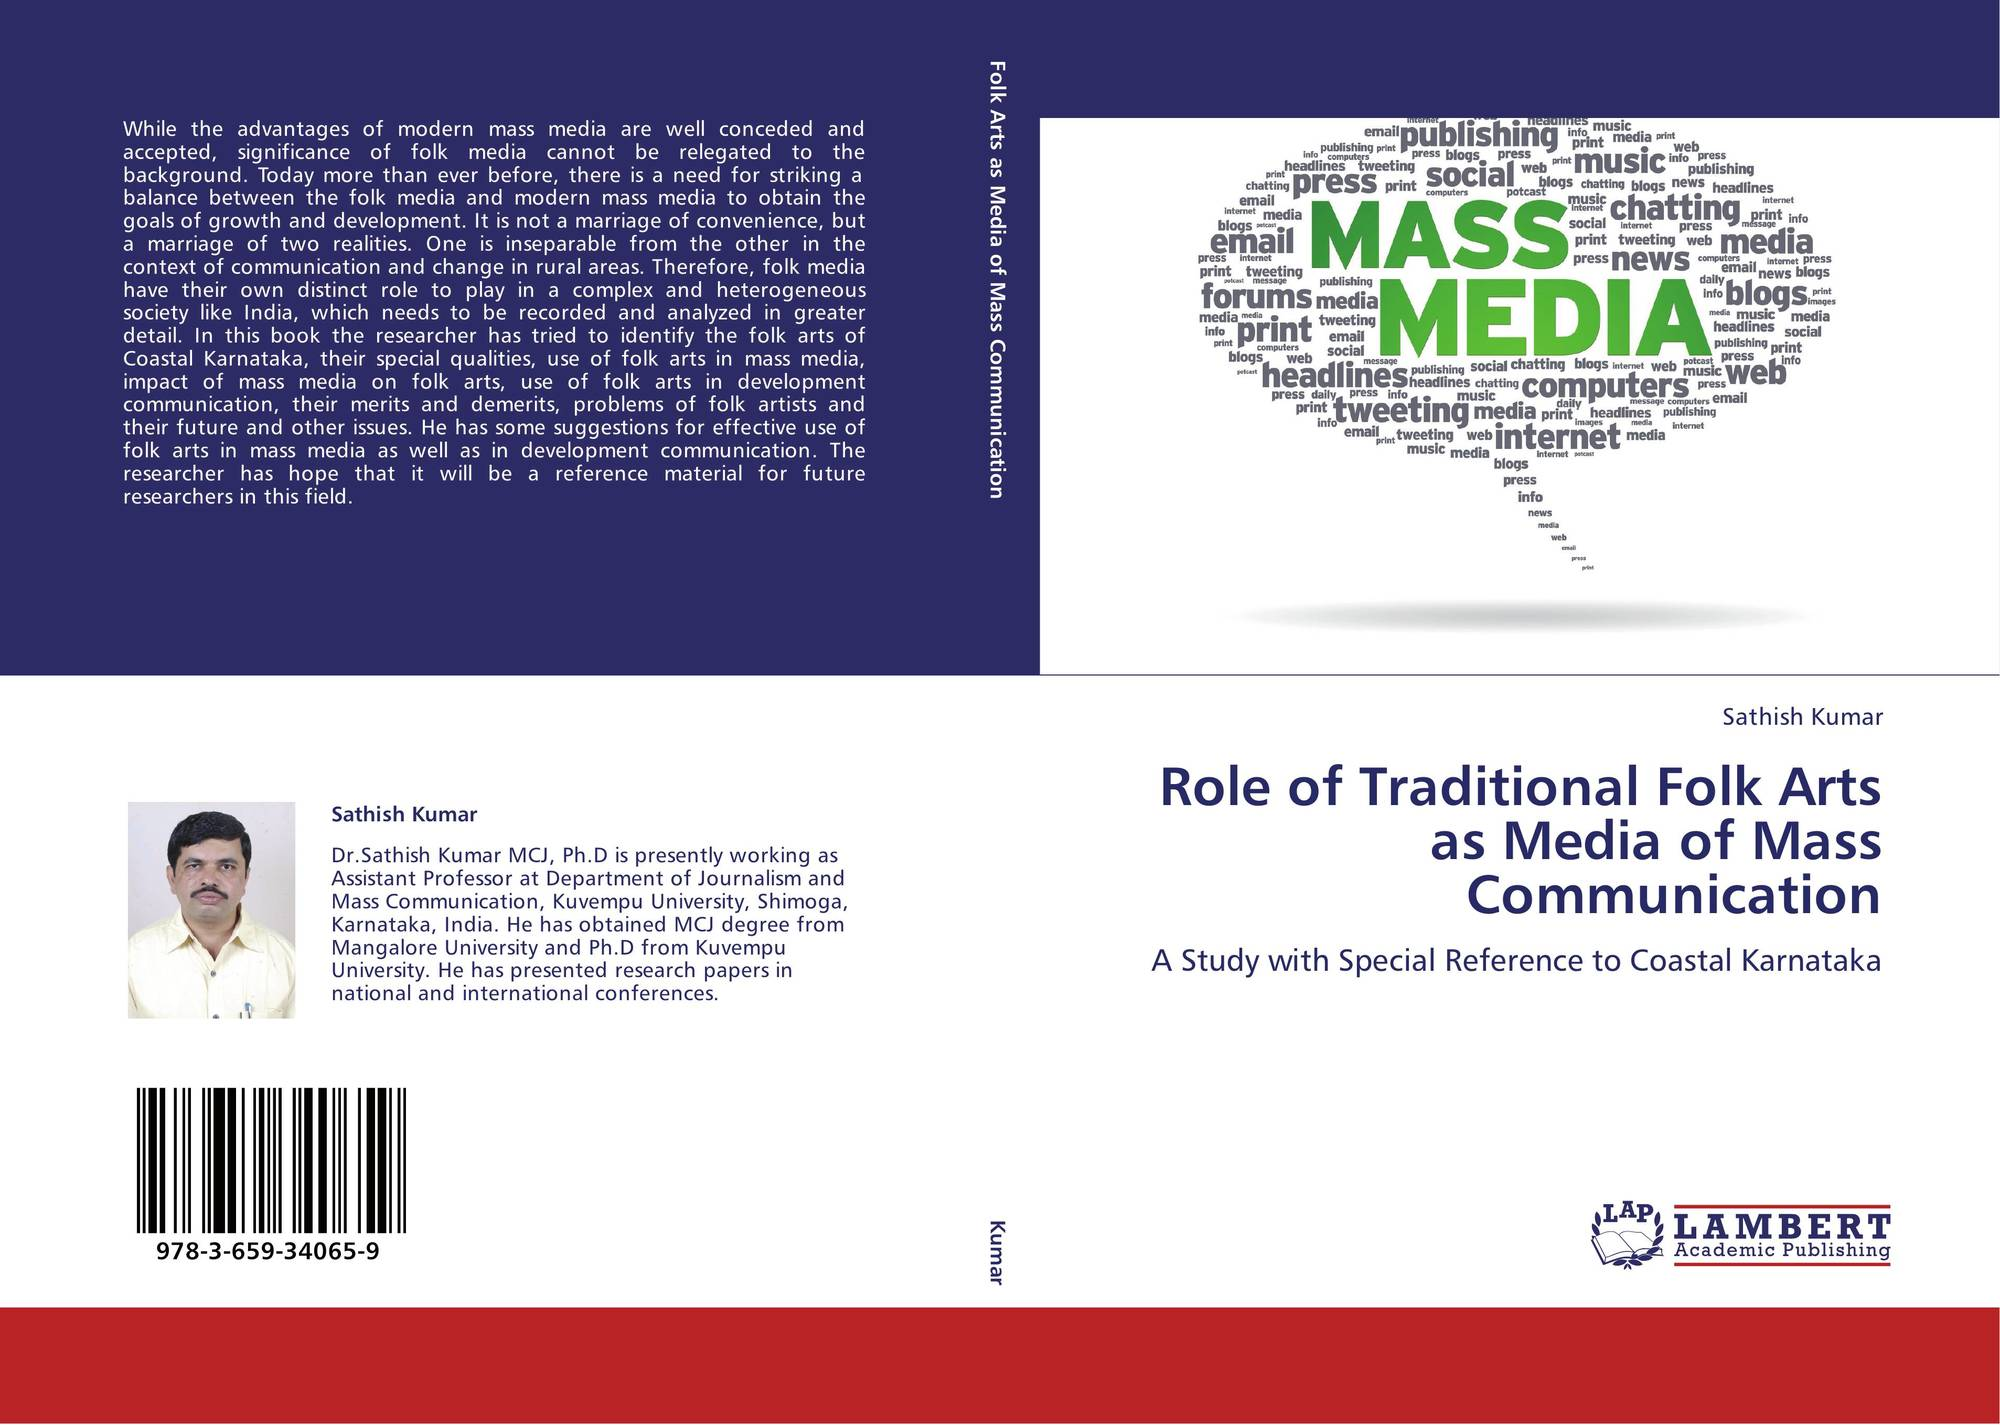 role of mass media as culture's